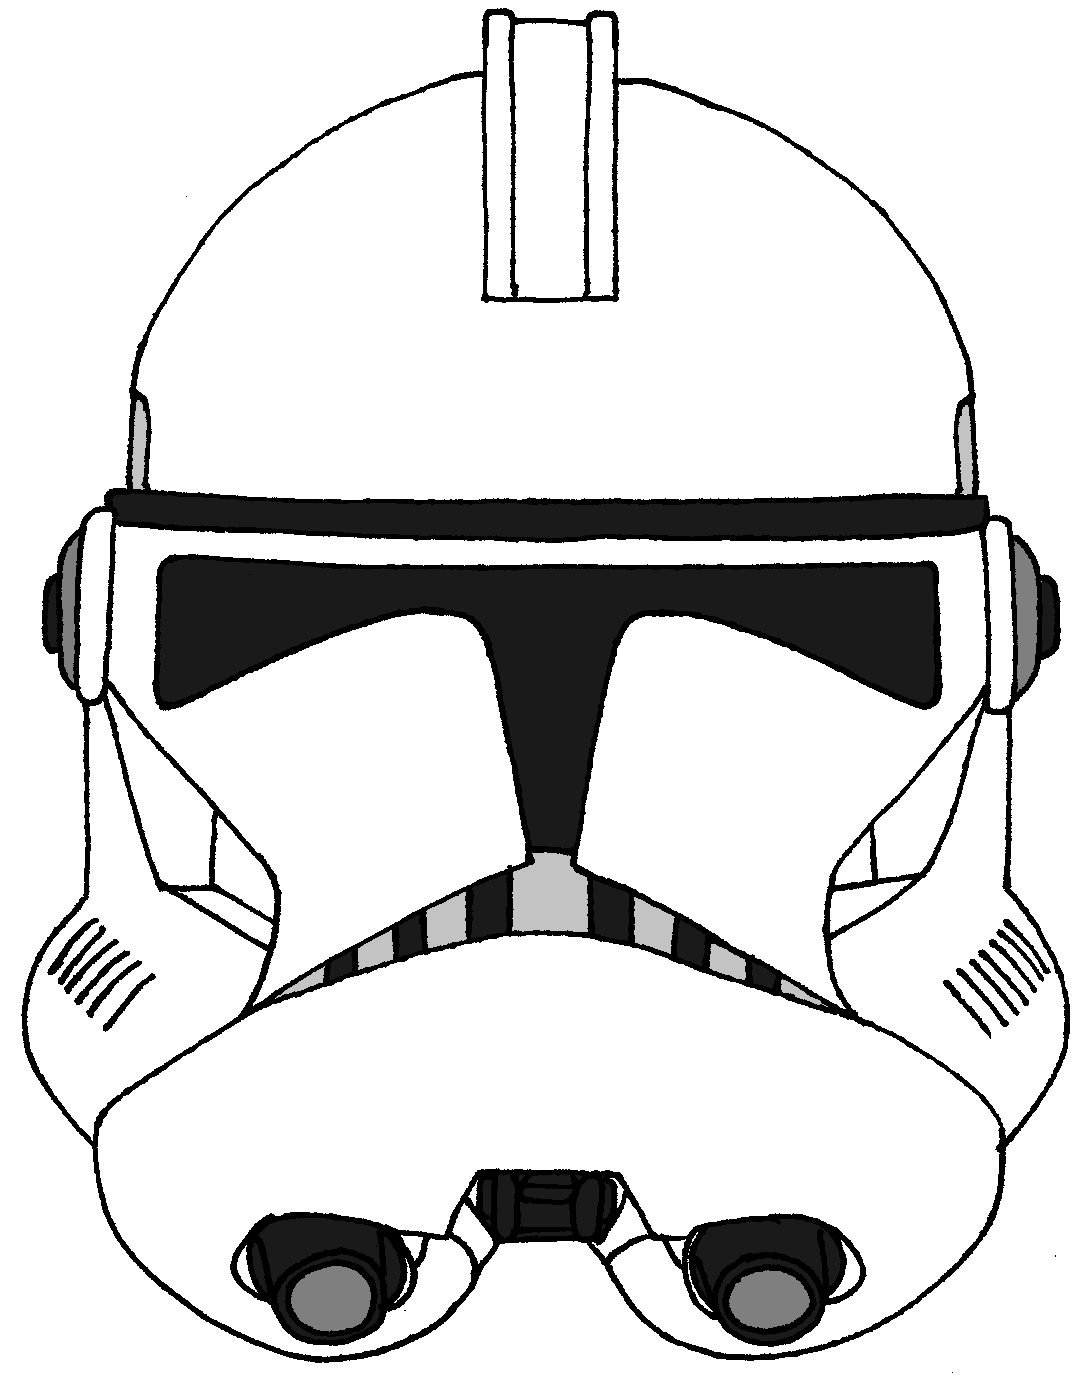 Clone Trooper Helmet Phase 2